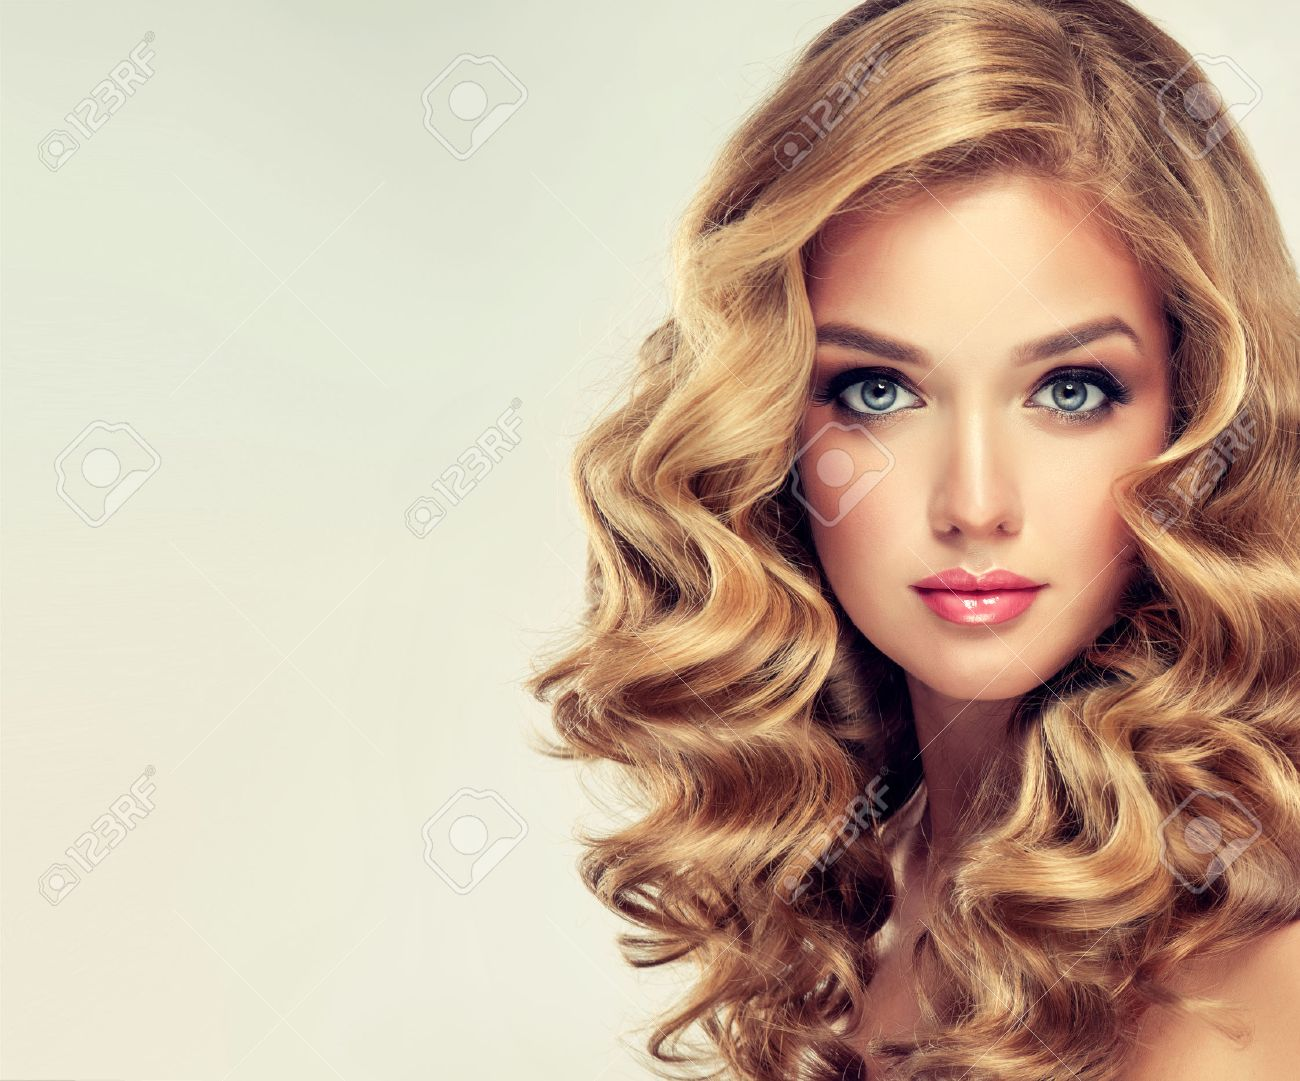 Beautiful Girl Blonde. Hair With An Elegant Hairstyle, Wavy Hair ...